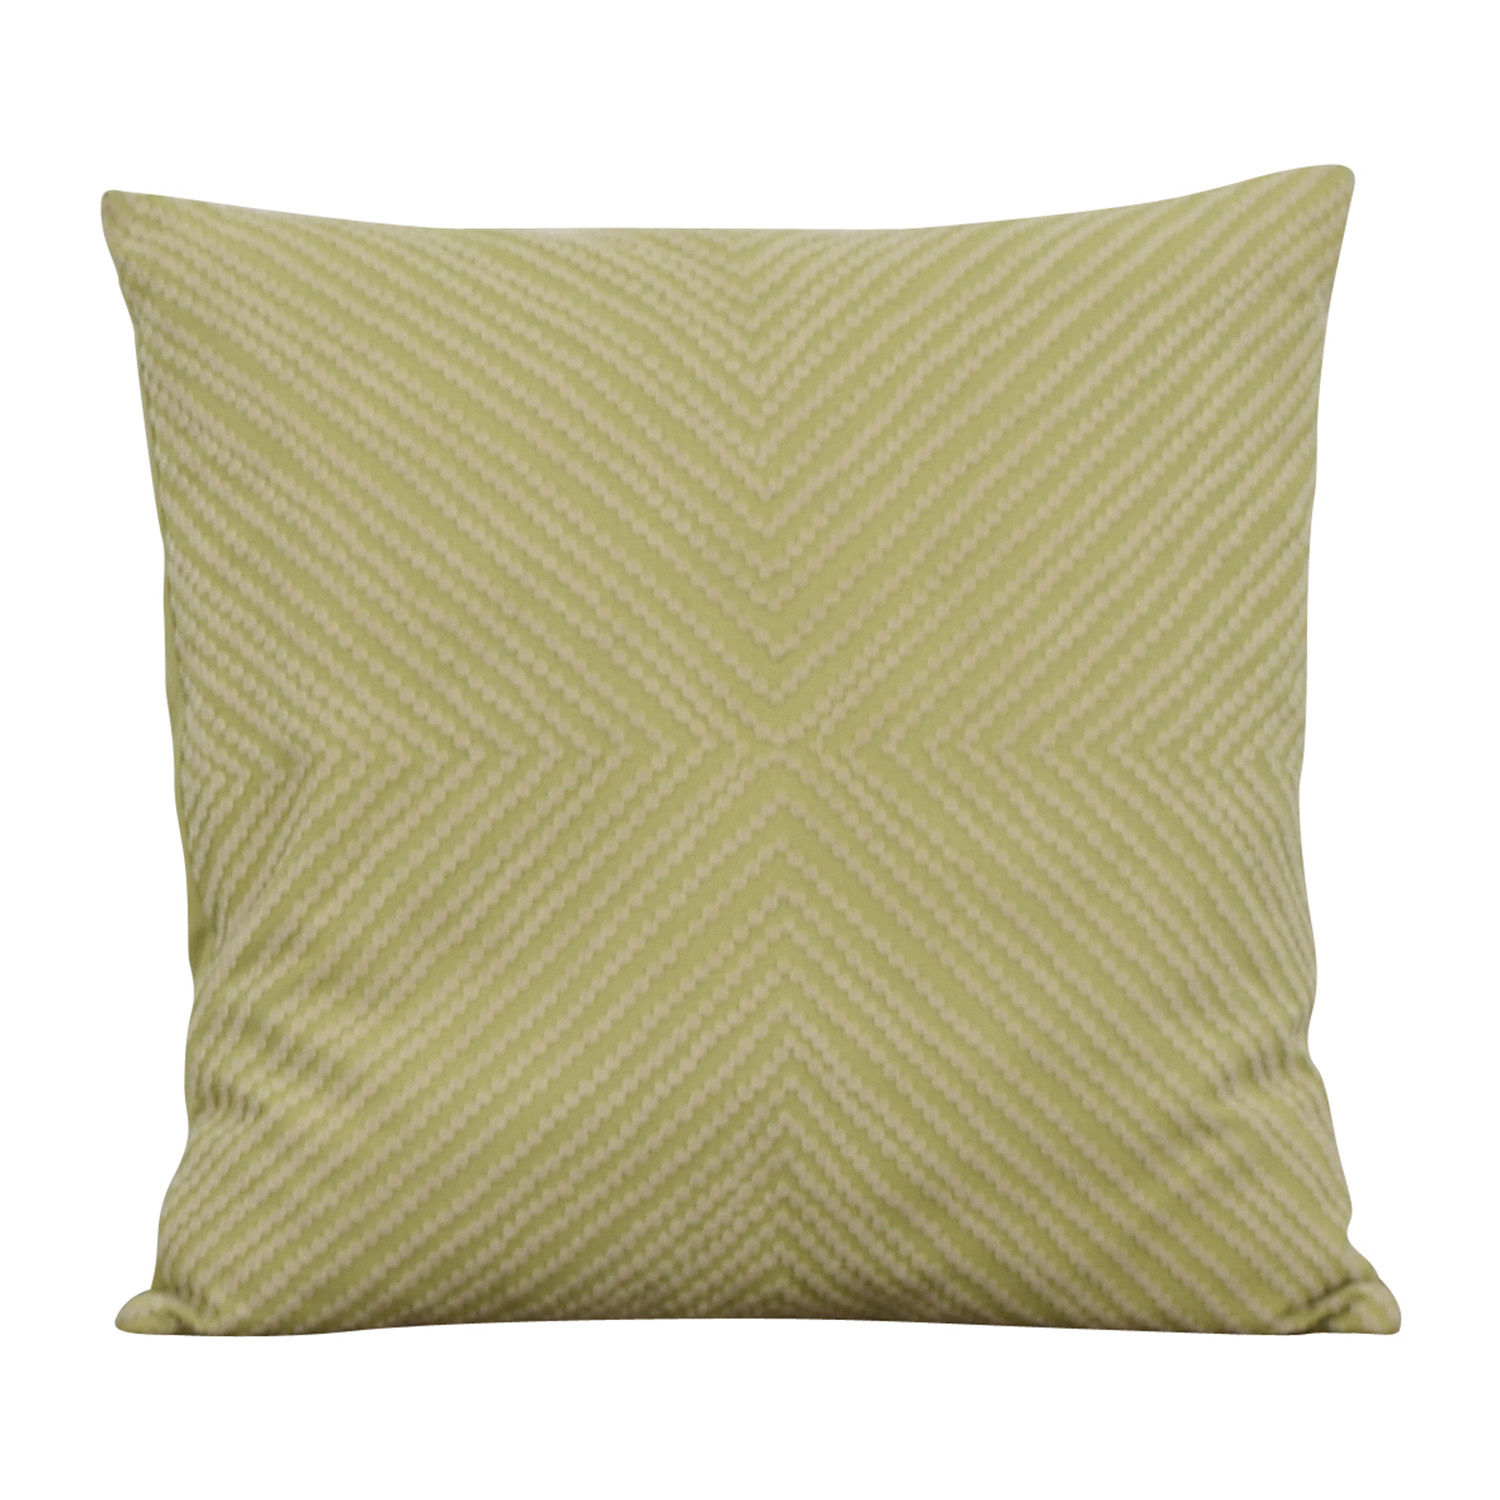 Lime Green and Cream Decorative Toss Pillow Sofas